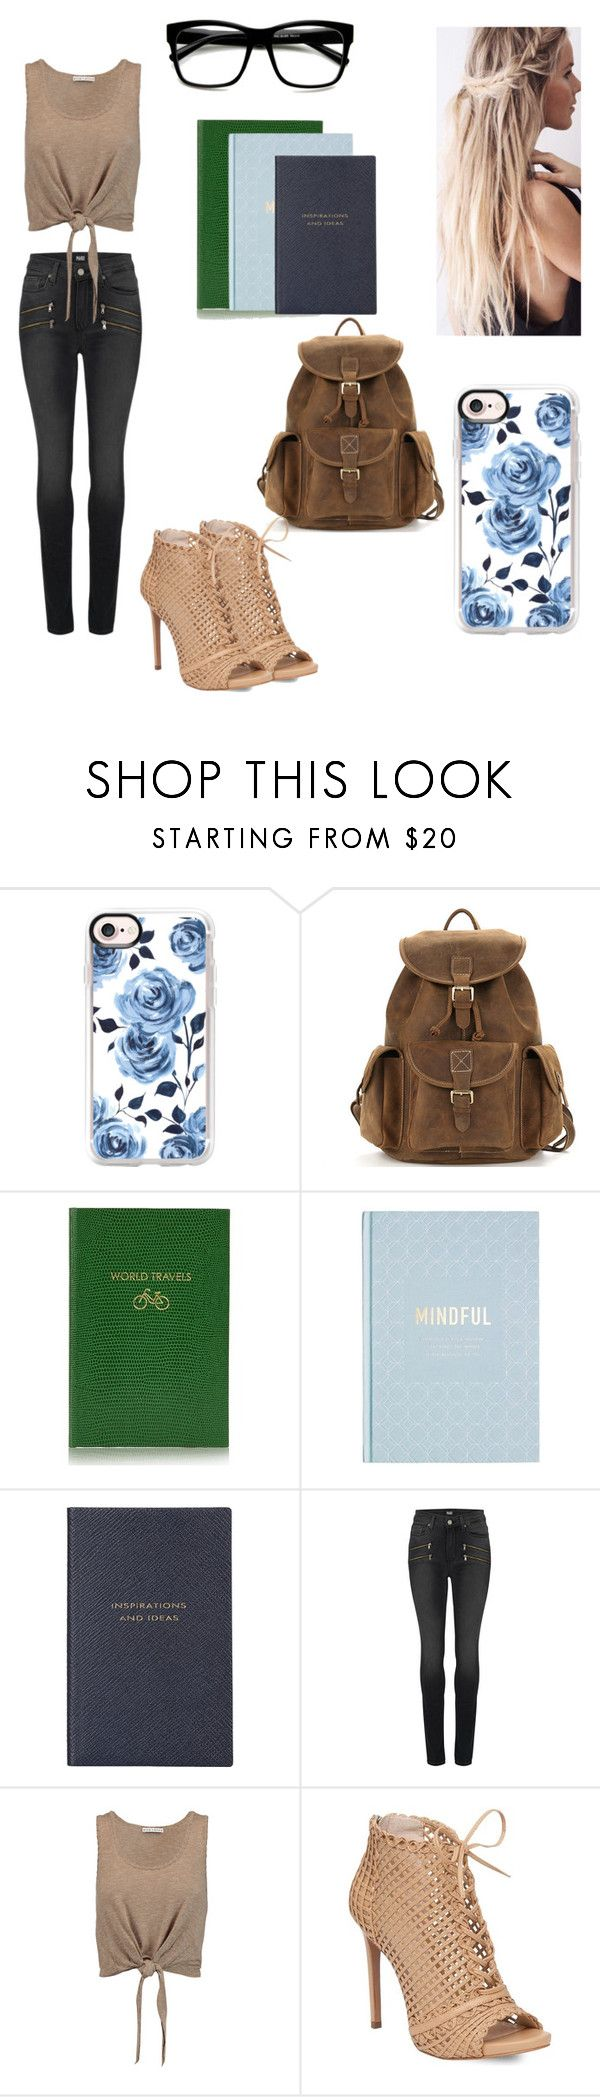 """""""School #6"""" by kendall-bostic ❤ liked on Polyvore featuring Casetify, Sloane Stationery, Smythson, Paige Denim, Alice + Olivia and Jessica Simpson"""